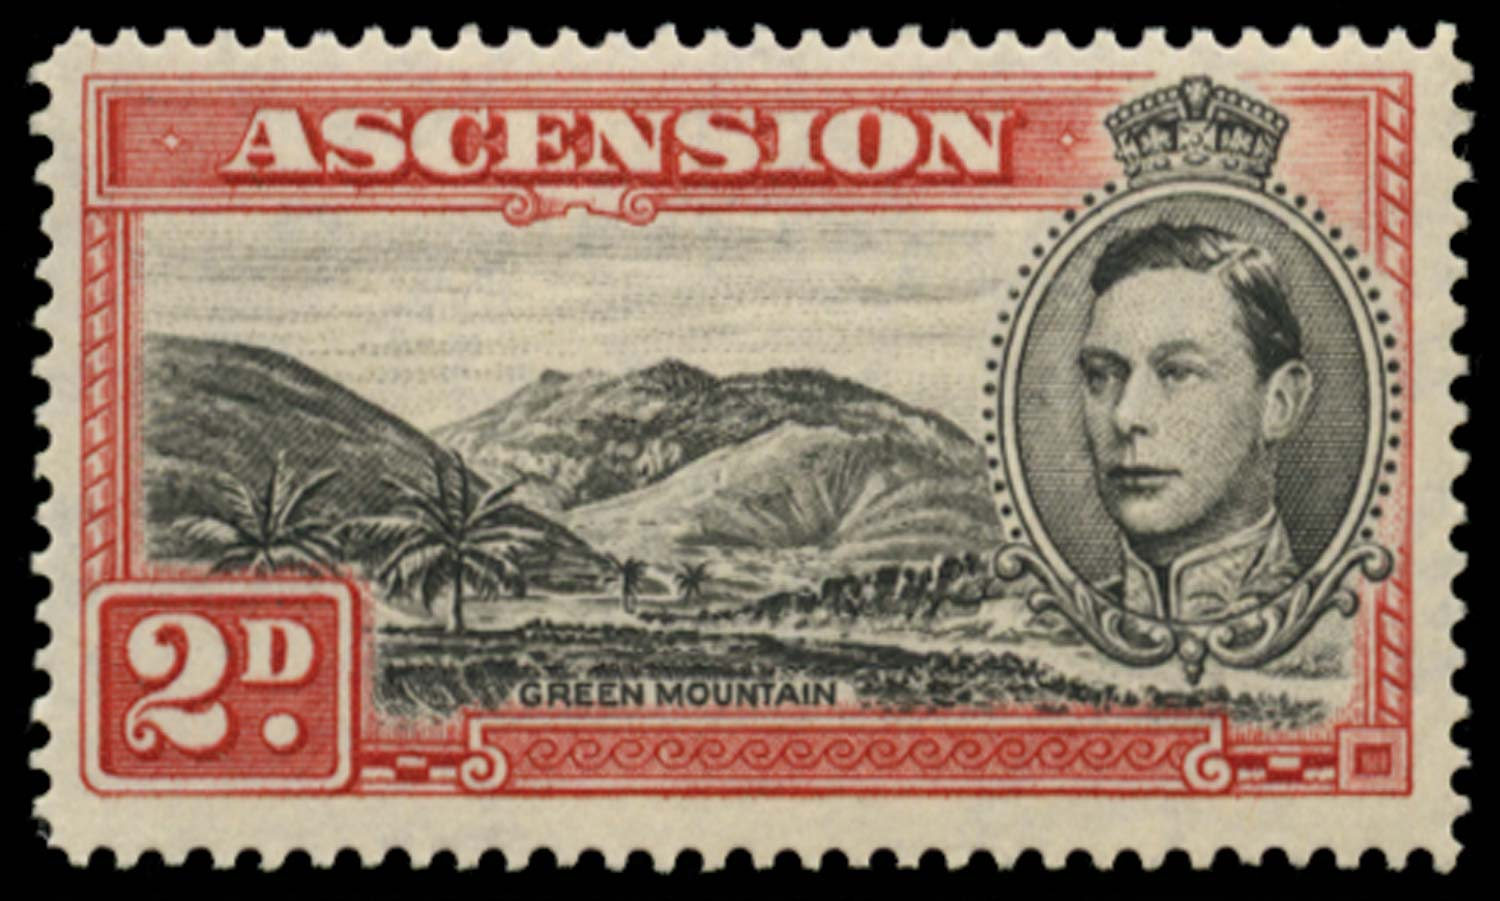 ASCENSION 1949  SG41ca Mint 2d perf 14 Mountaineer flaw